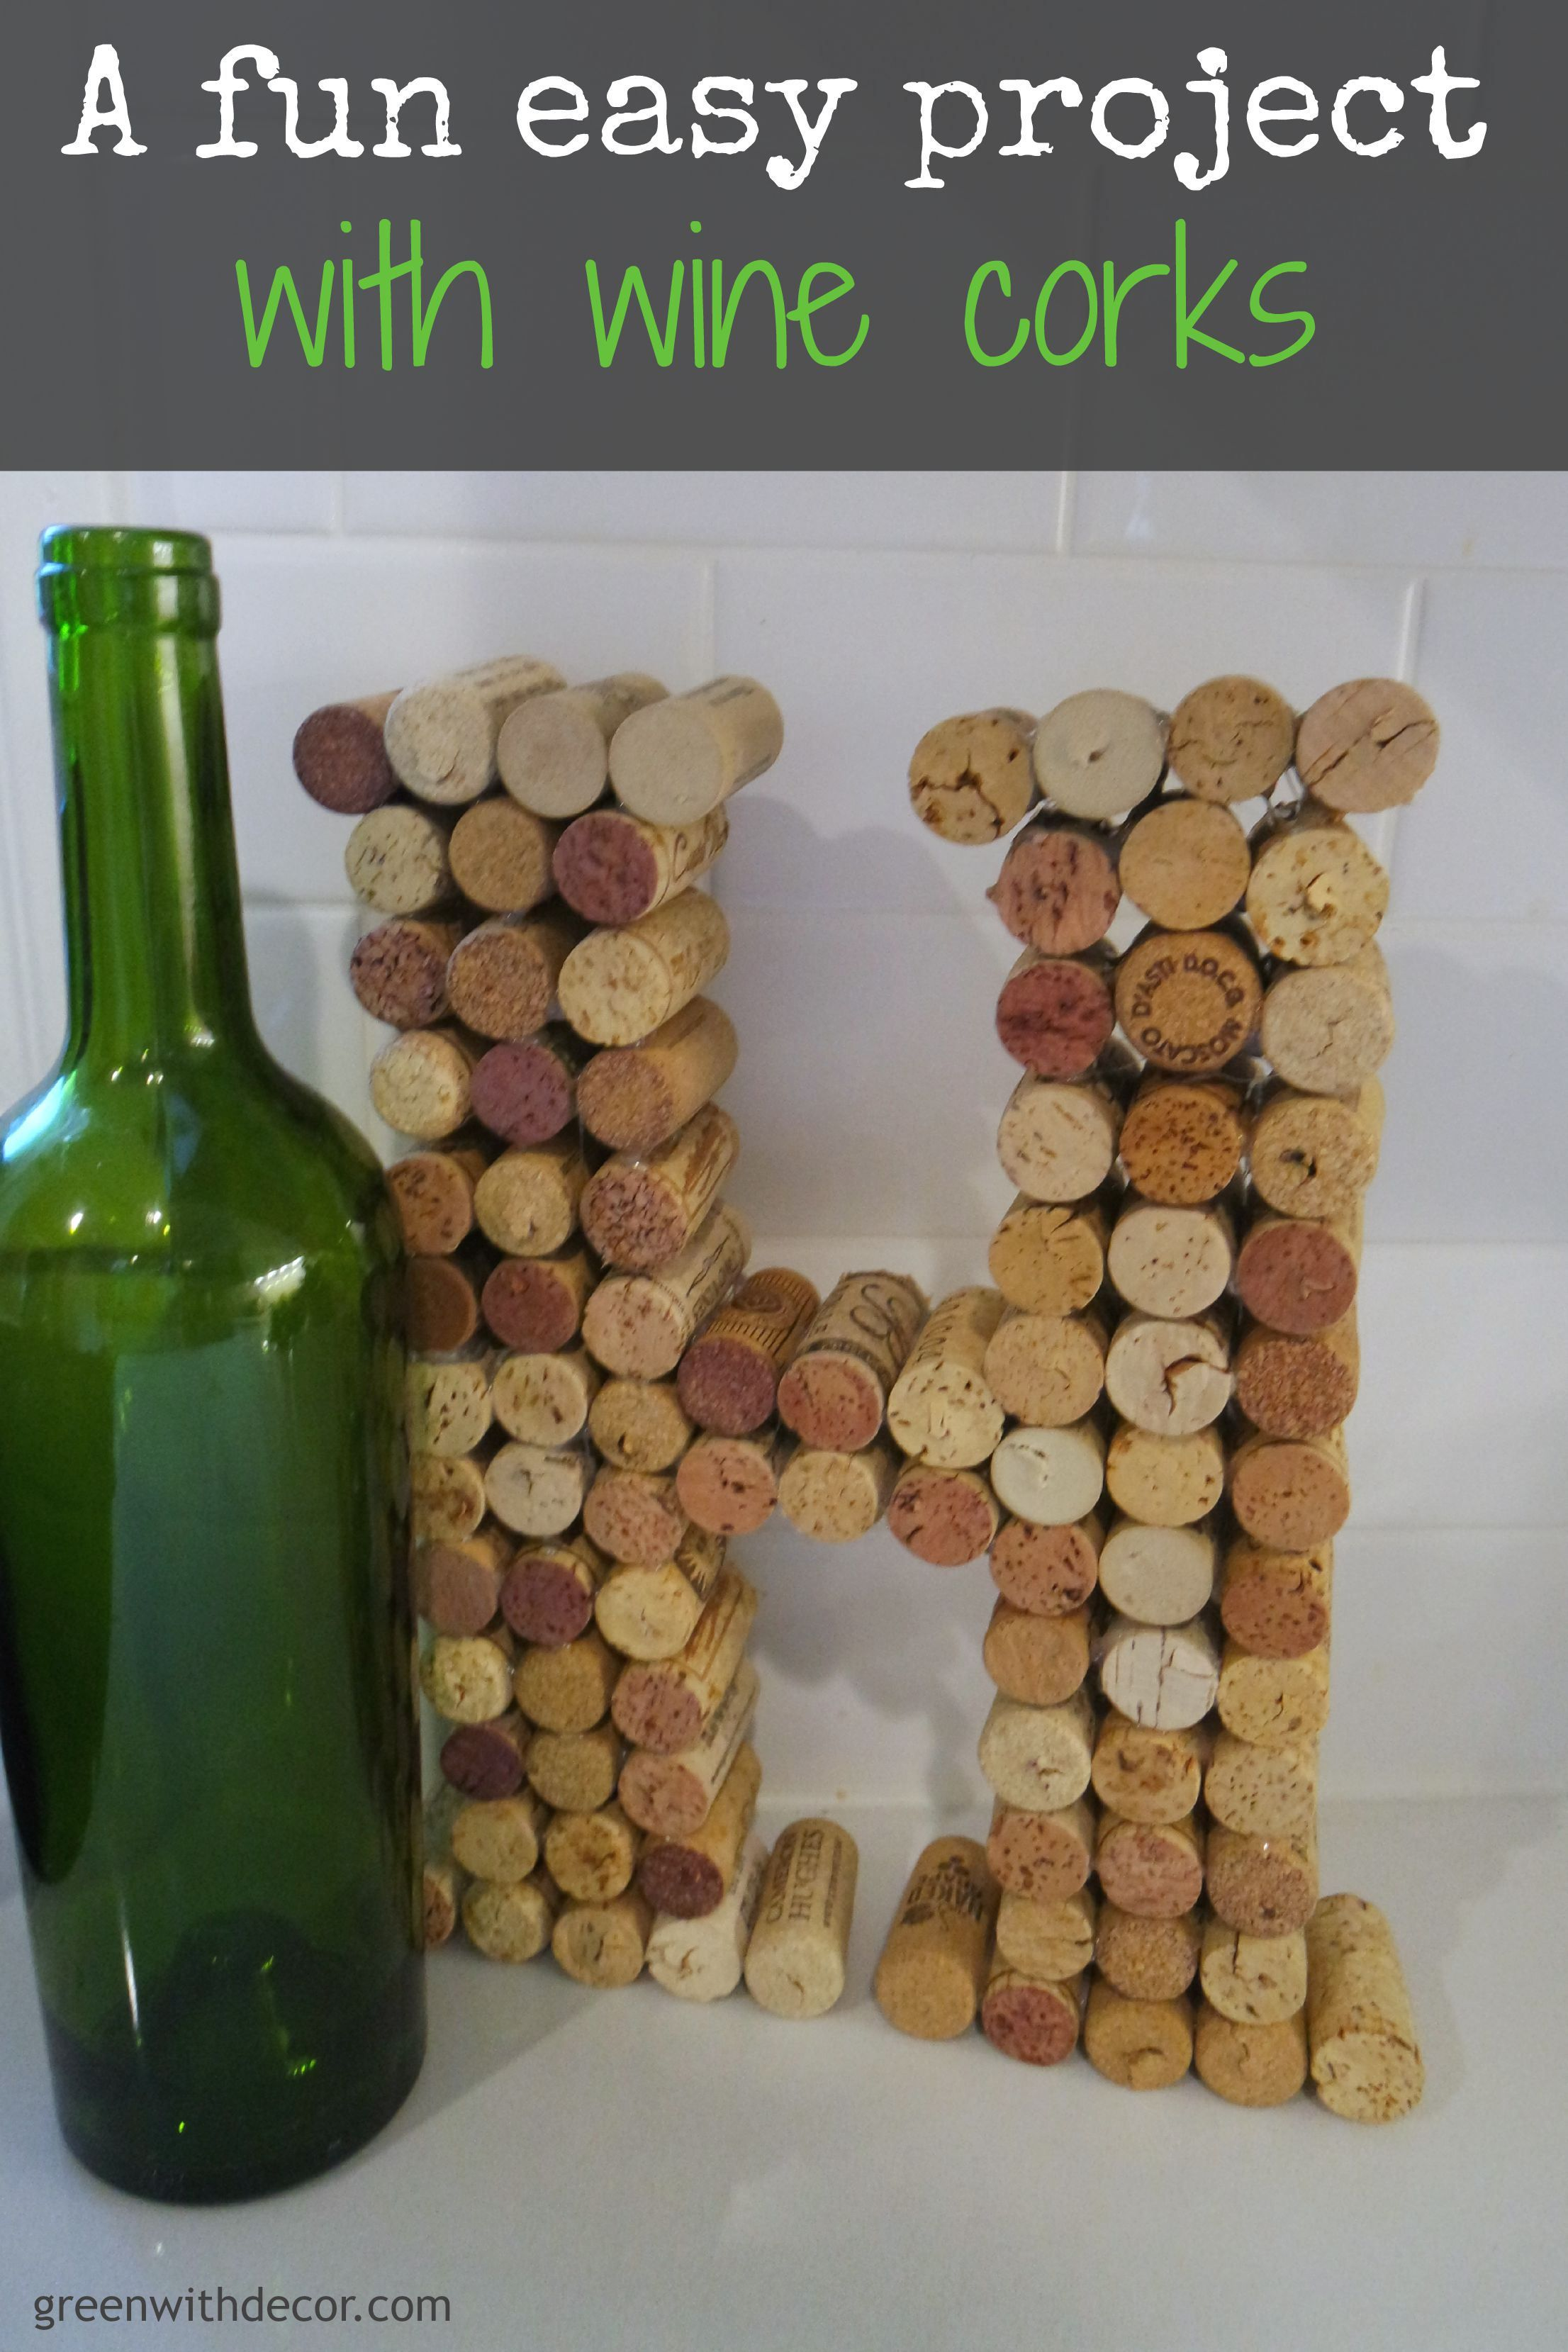 An Easy Diy Project With Wine Corks Green With Decor Wine Cork Projects Wine Cork Diy Crafts Wine Cork Diy Projects